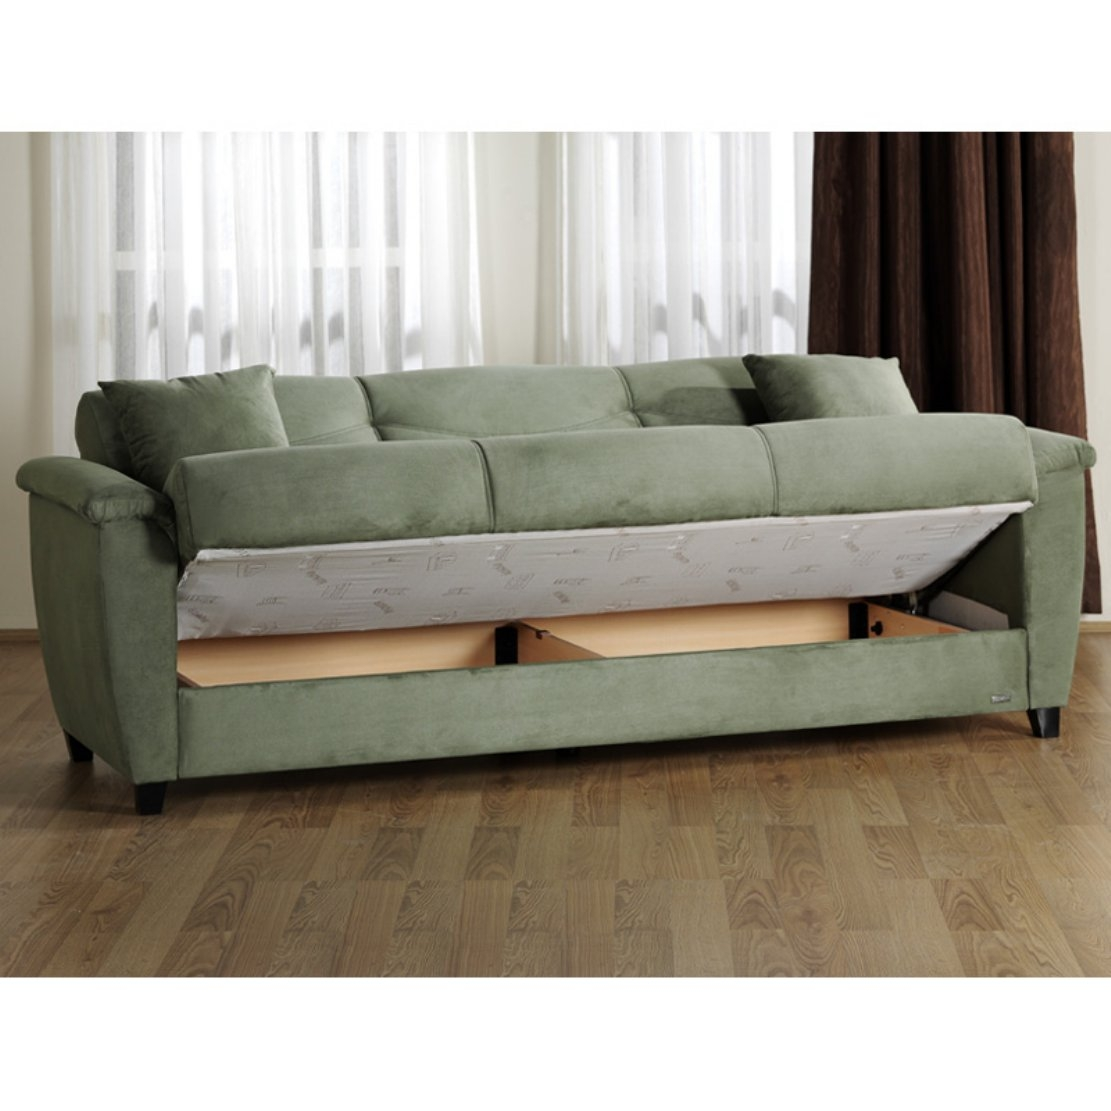 Sage Green Microfiber Couch Sofa Bed Sleeper with Hidden ...